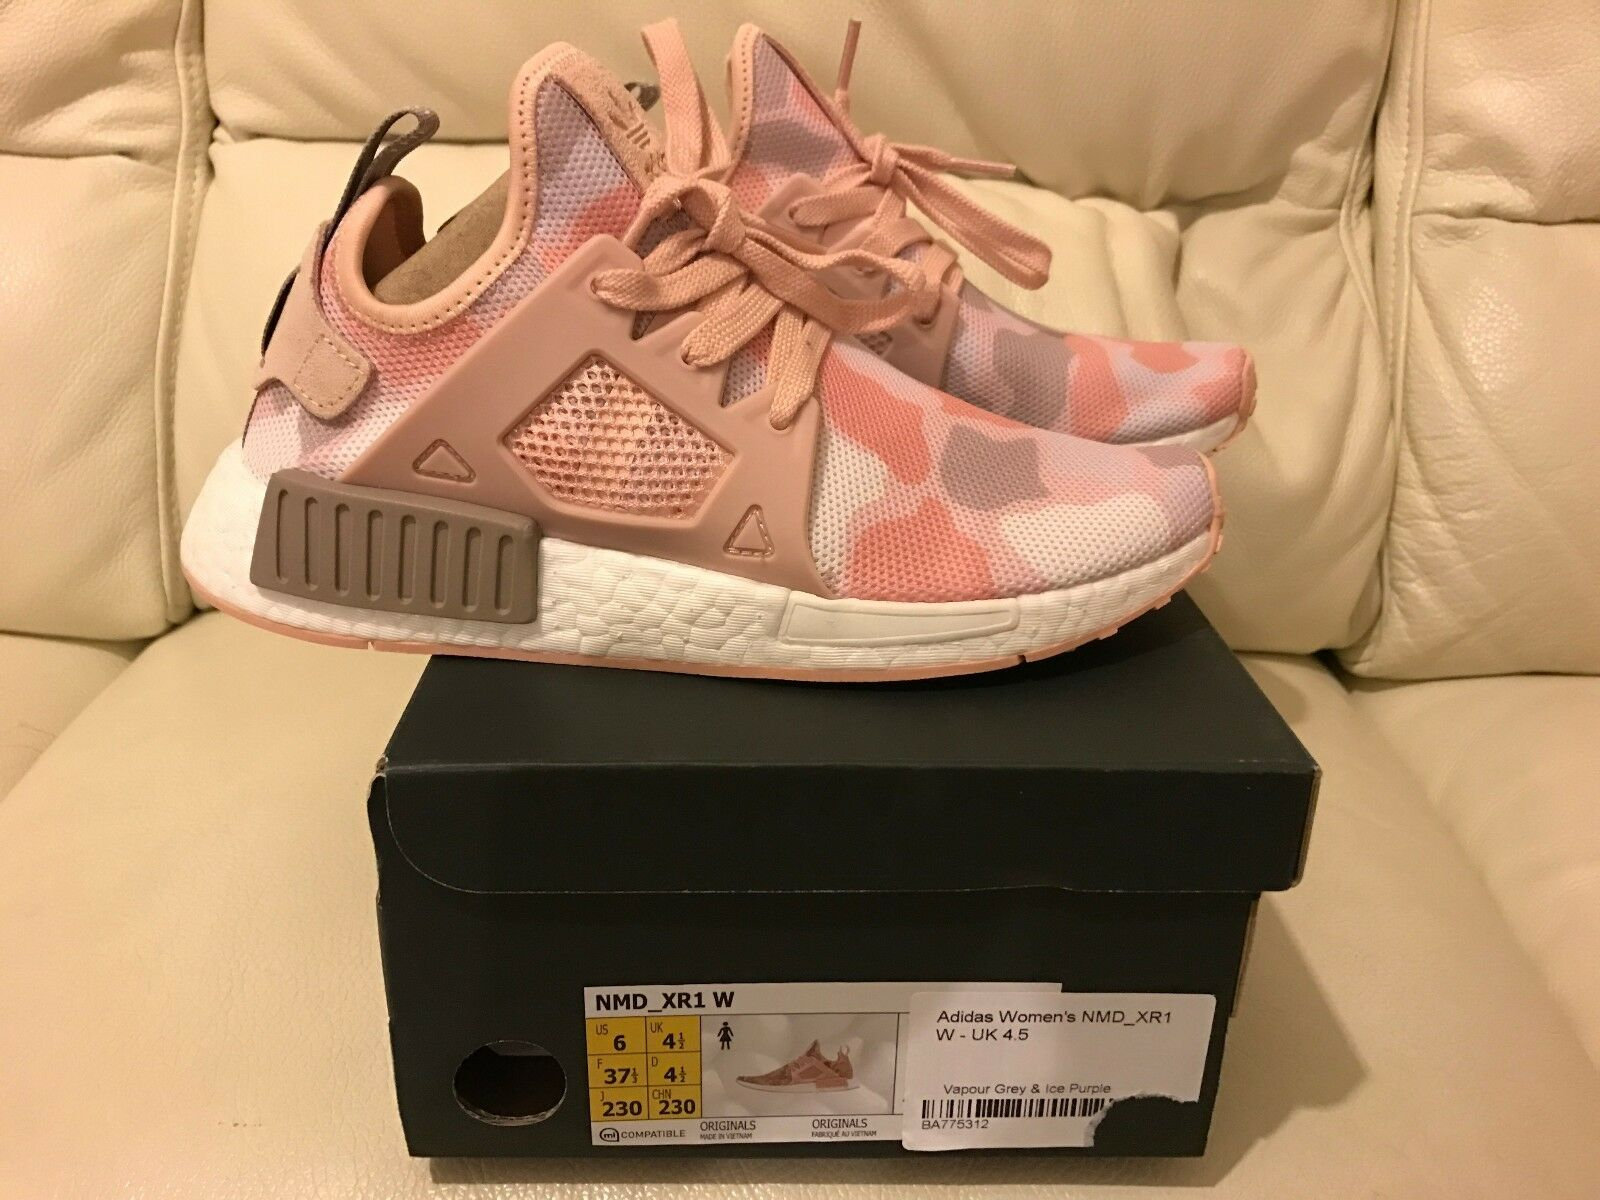 ADIDAS NMD XR1 RUNNER Rose Violet DUCK CAMO ALLTaille 4.5 5 5.5 6 6.5 7 NEW